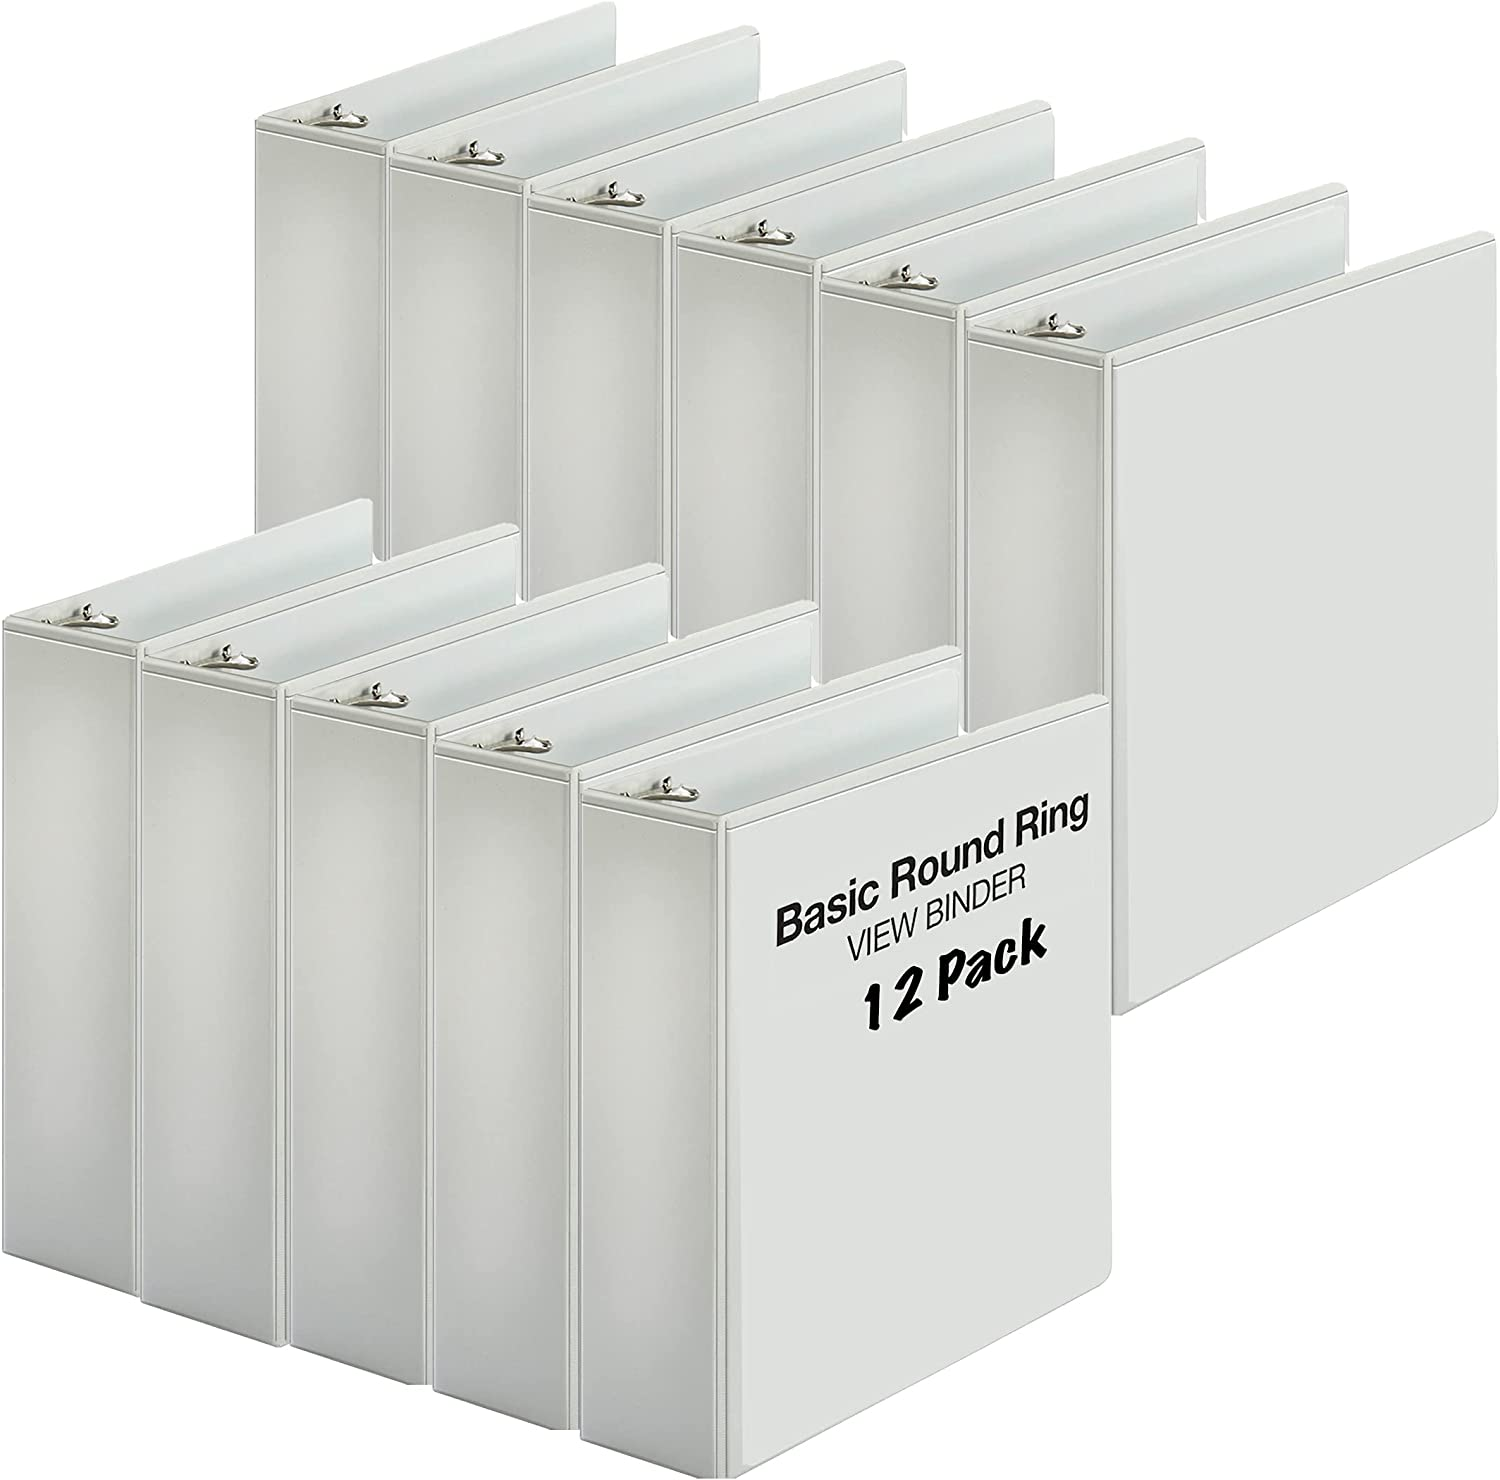 3 Inch Binder Ring View Heavy Binders for Rugged Award-winning store Duty Los Angeles Mall